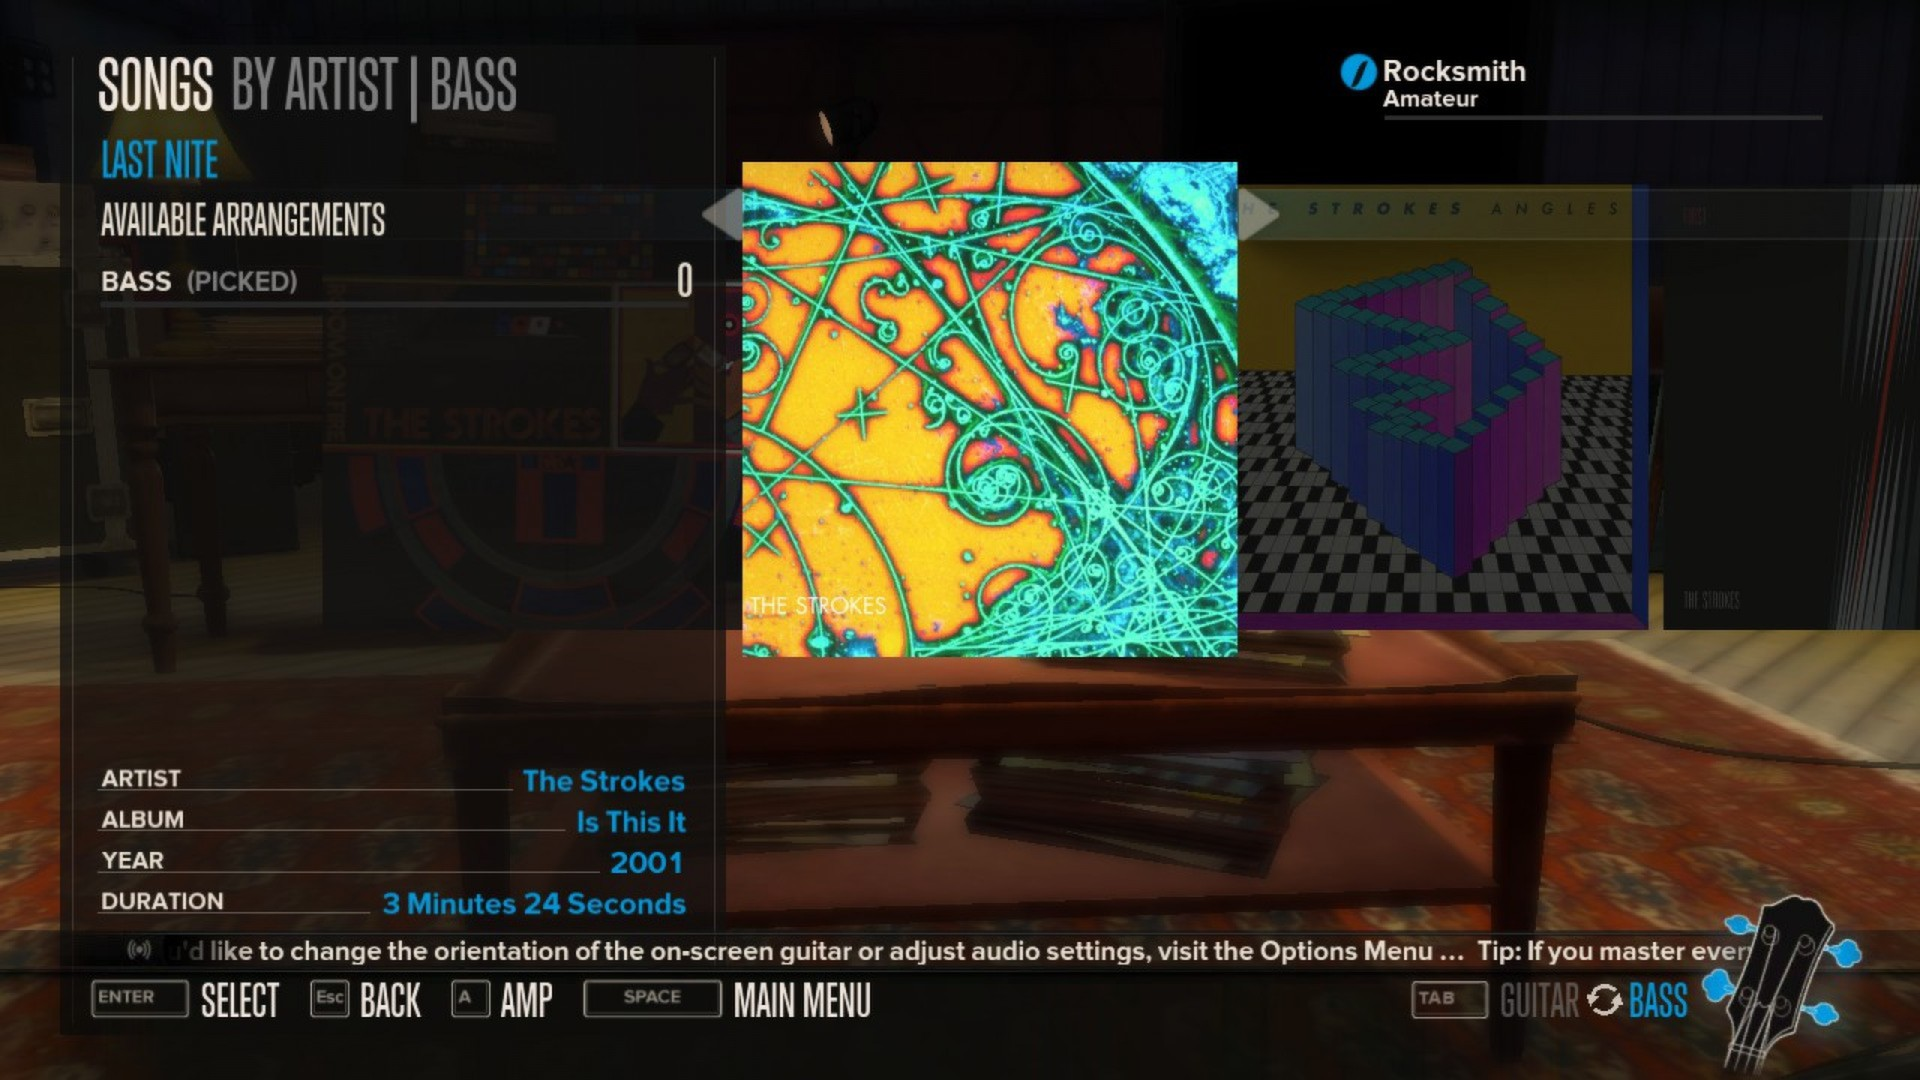 Rocksmith - The Strokes Song Pack